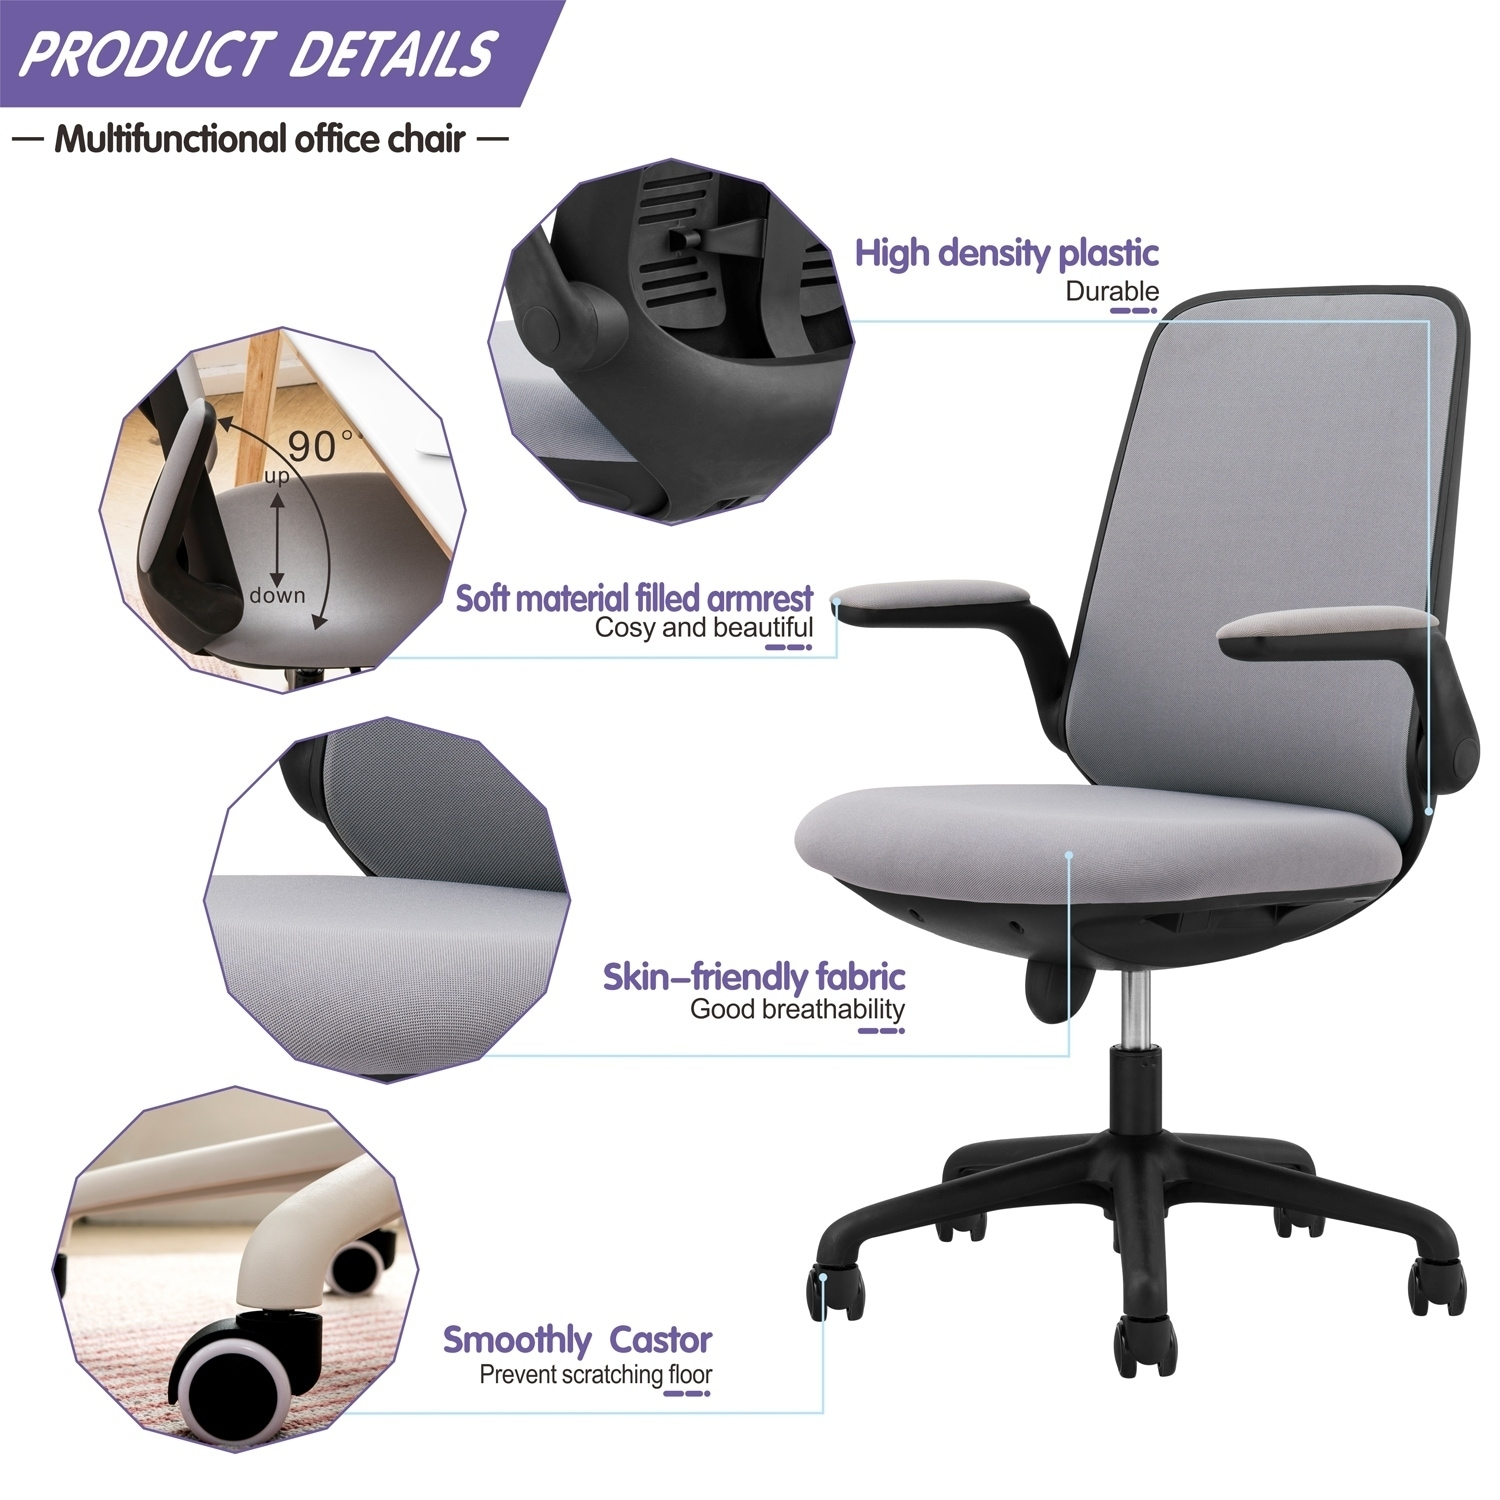 Shop Ovios Cute Desk Chair Fabric Office Chair For Home Or Office Modern Comfortble Nice Task Chair For Computer Desk Overstock 30240836